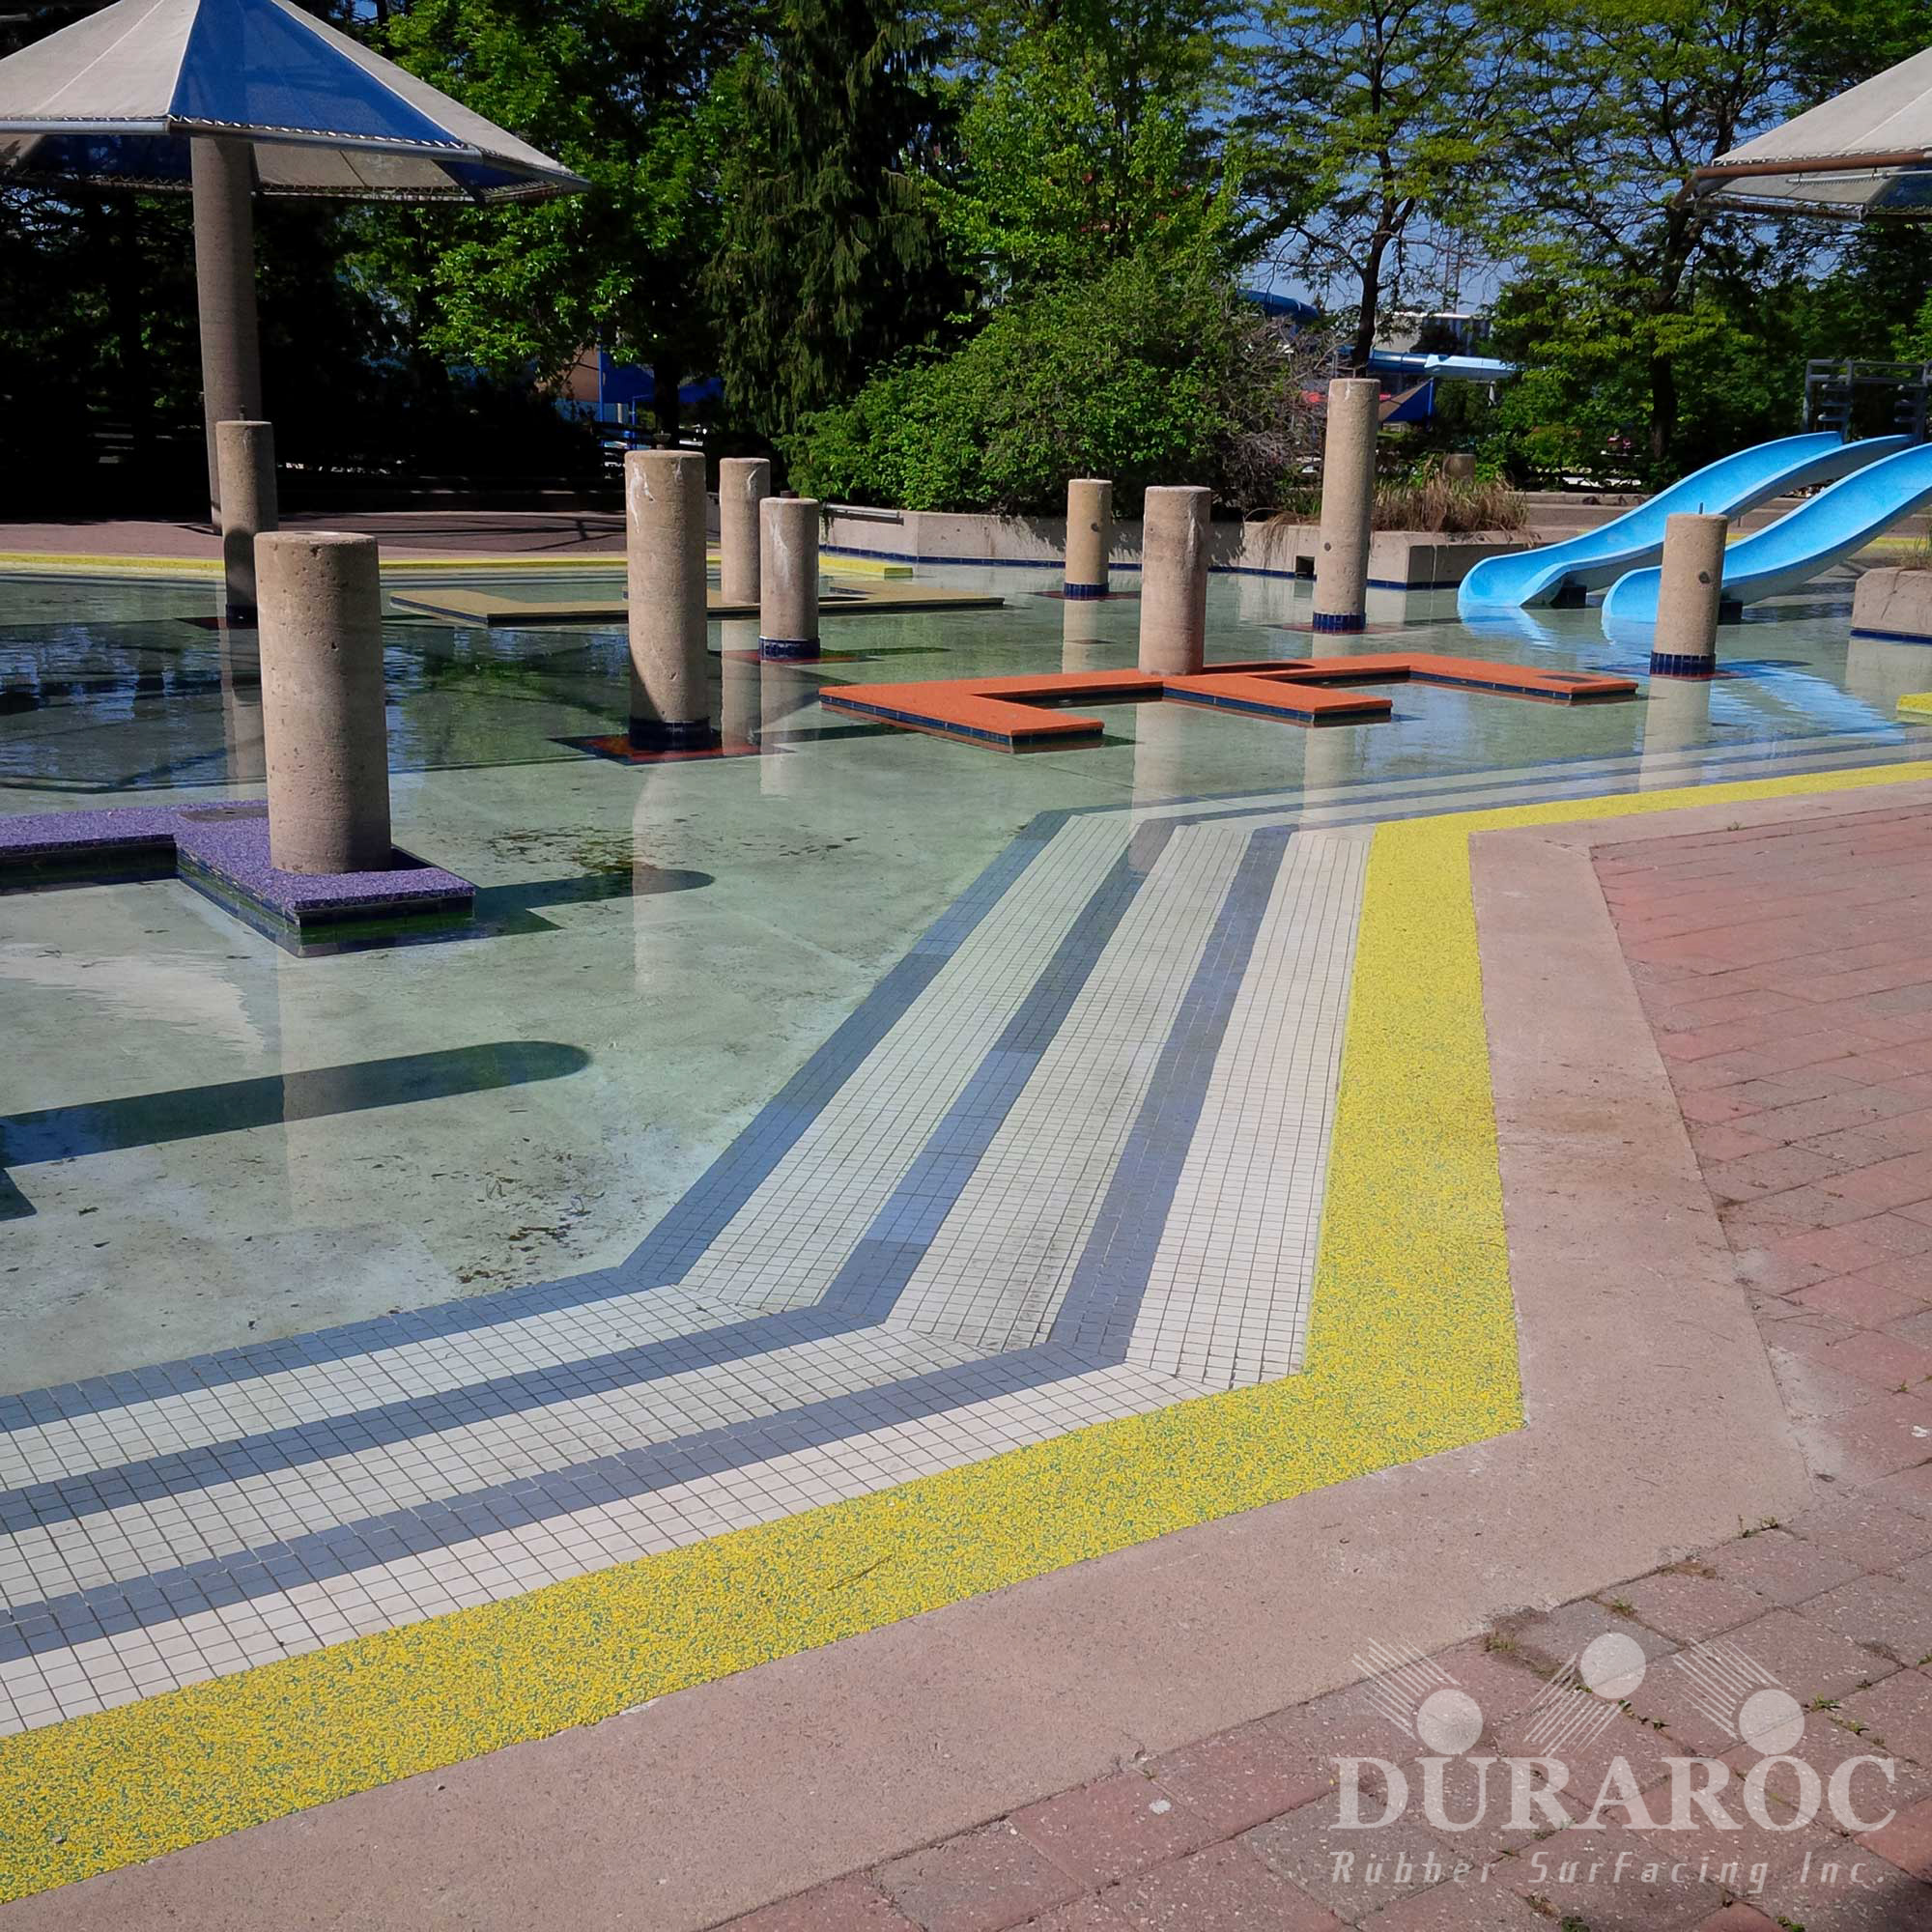 Duraroc anti-slip coating at a water park playgrounds